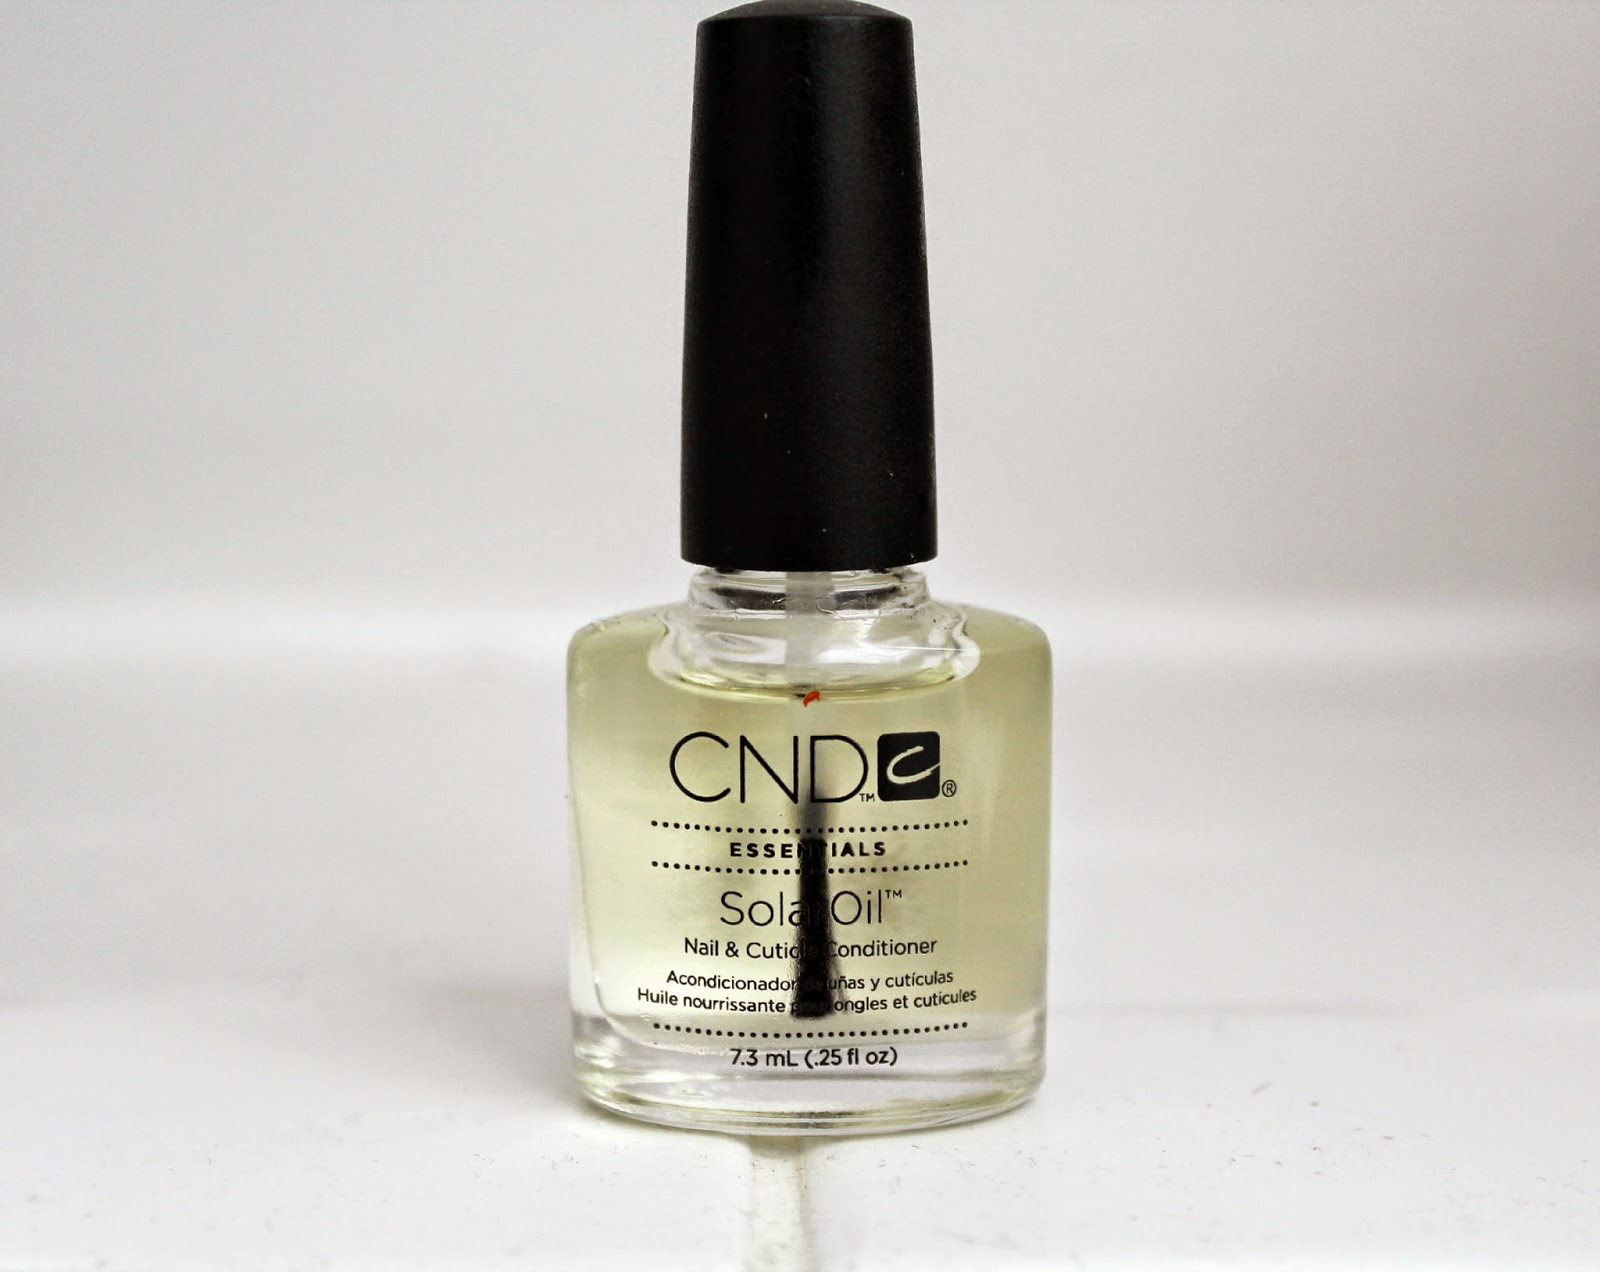 The Day In The Life Of Cnd Solar Oil Healthier Stronger